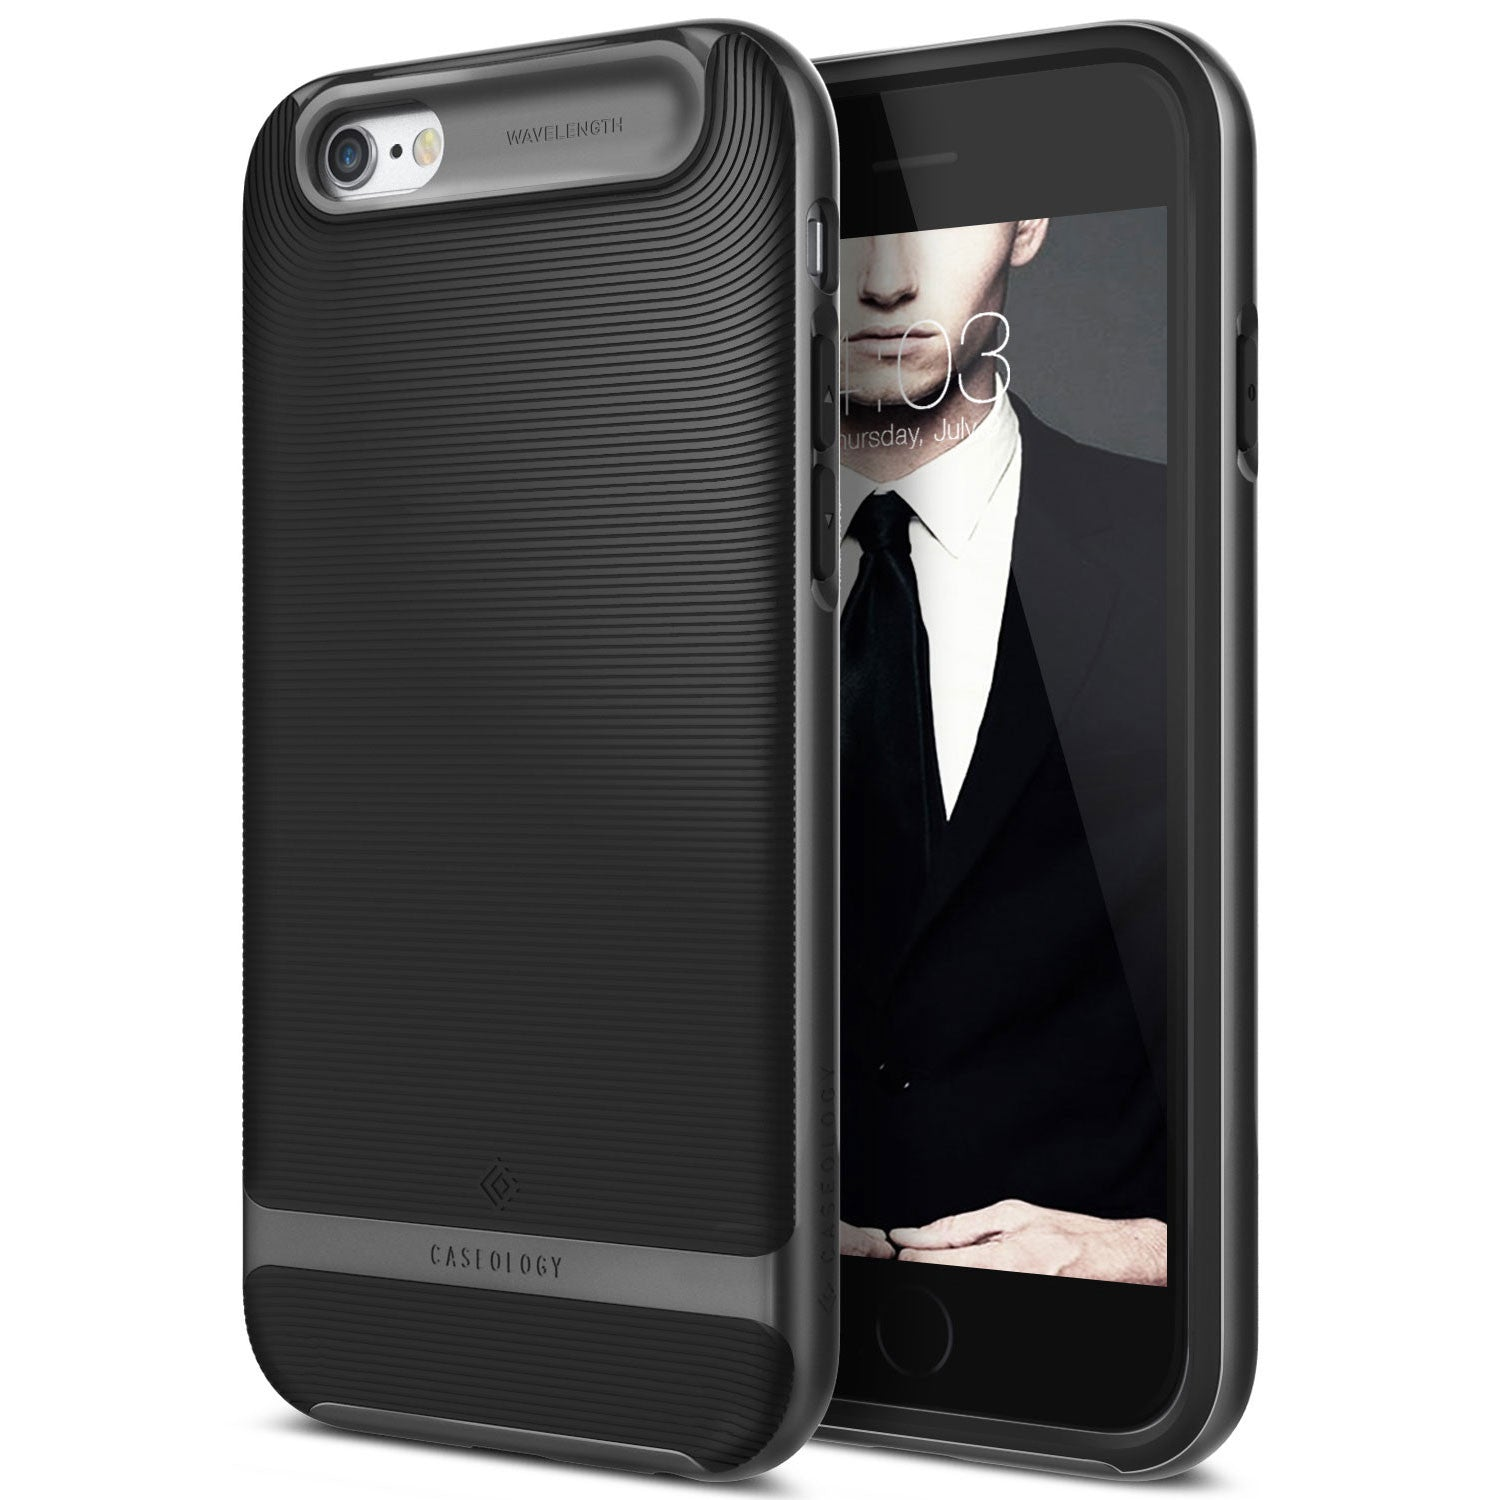 Caseology iPhone 6S Plus Case Wavelength black - Front/Back